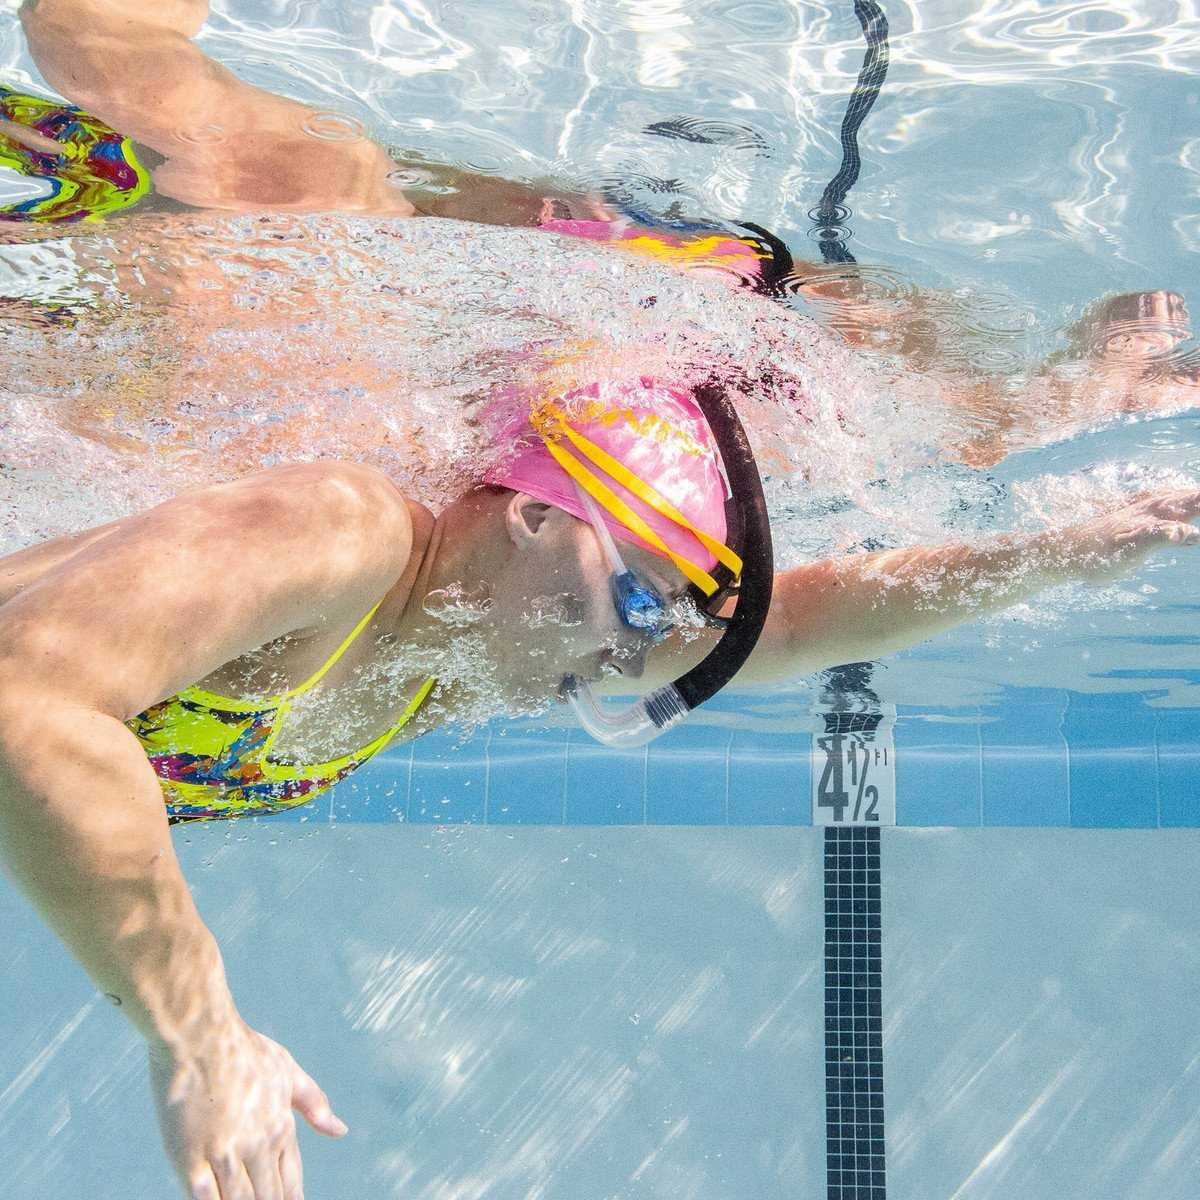 FINIS Stability Snorkel FINIS